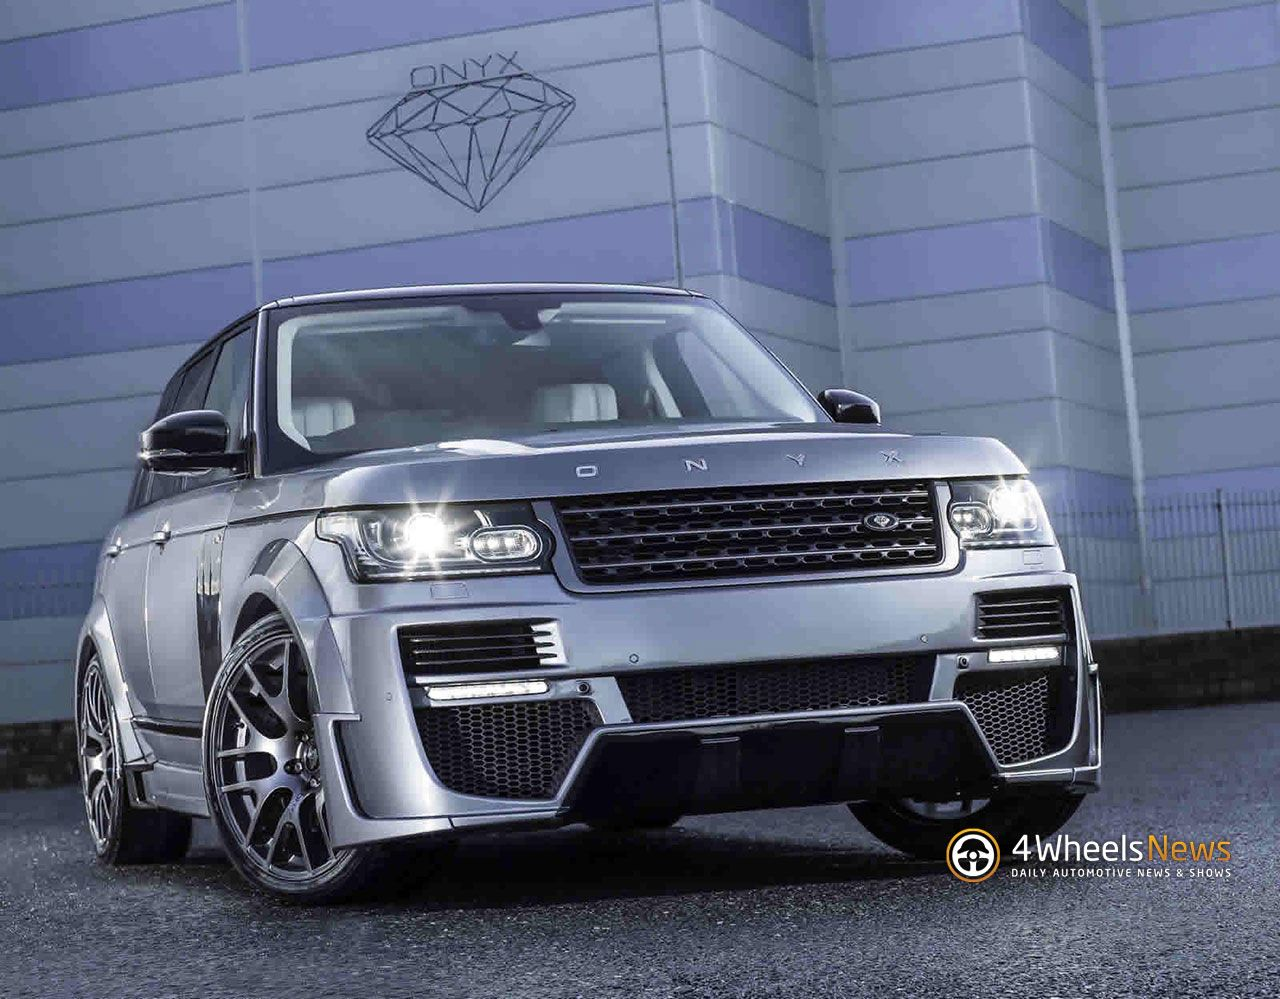 Pin by 4WheelsNews on SUVs Range rover, Luxury cars for